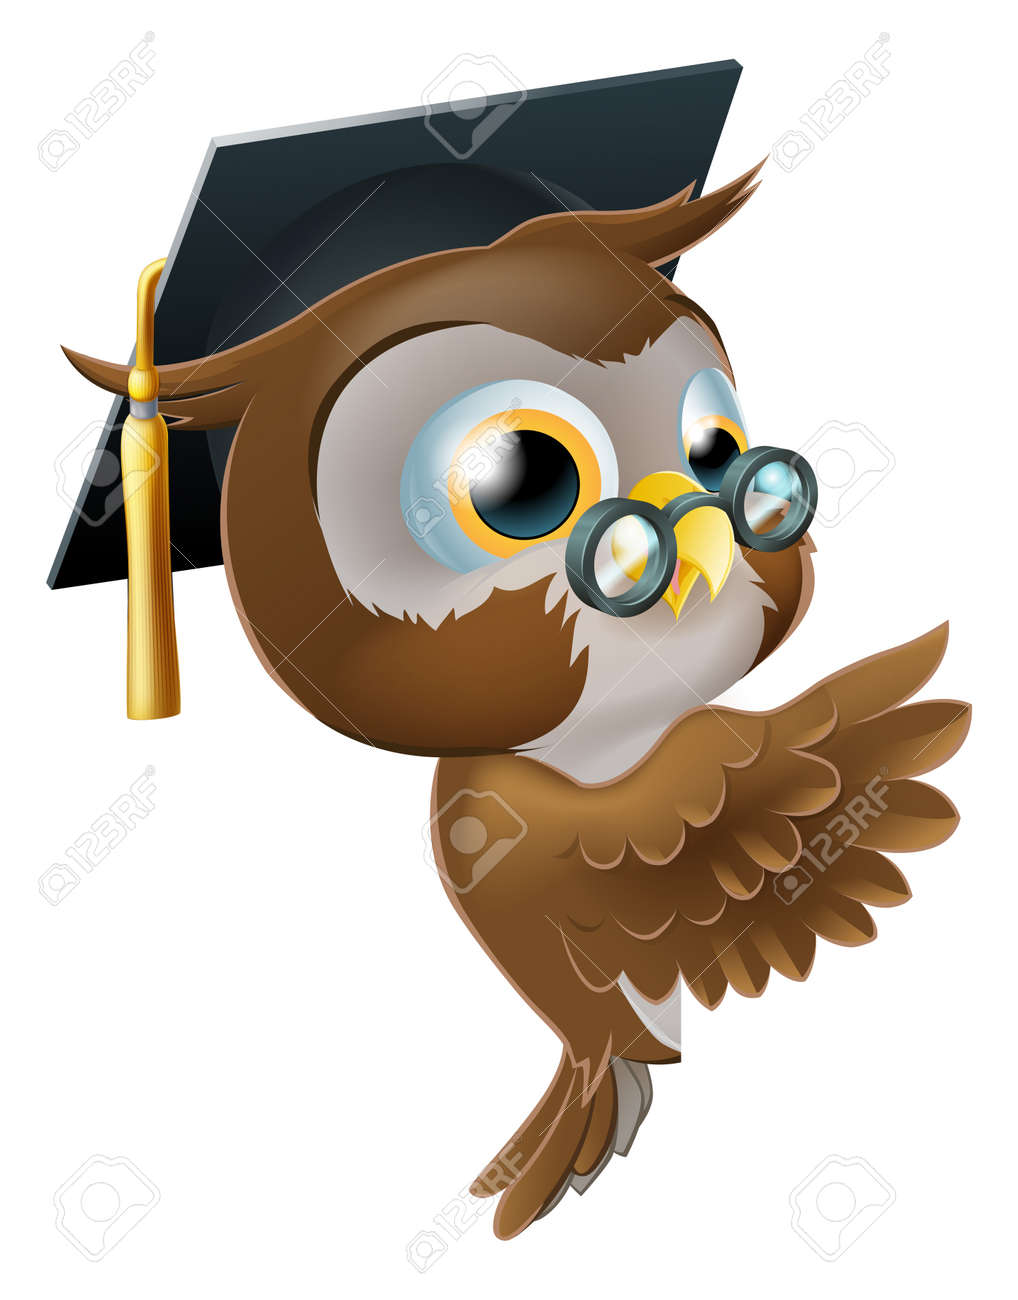 Illustration of a happy cute wise old owl leaning or peeking round a sign and pointing at it Stock Vector - 19367404